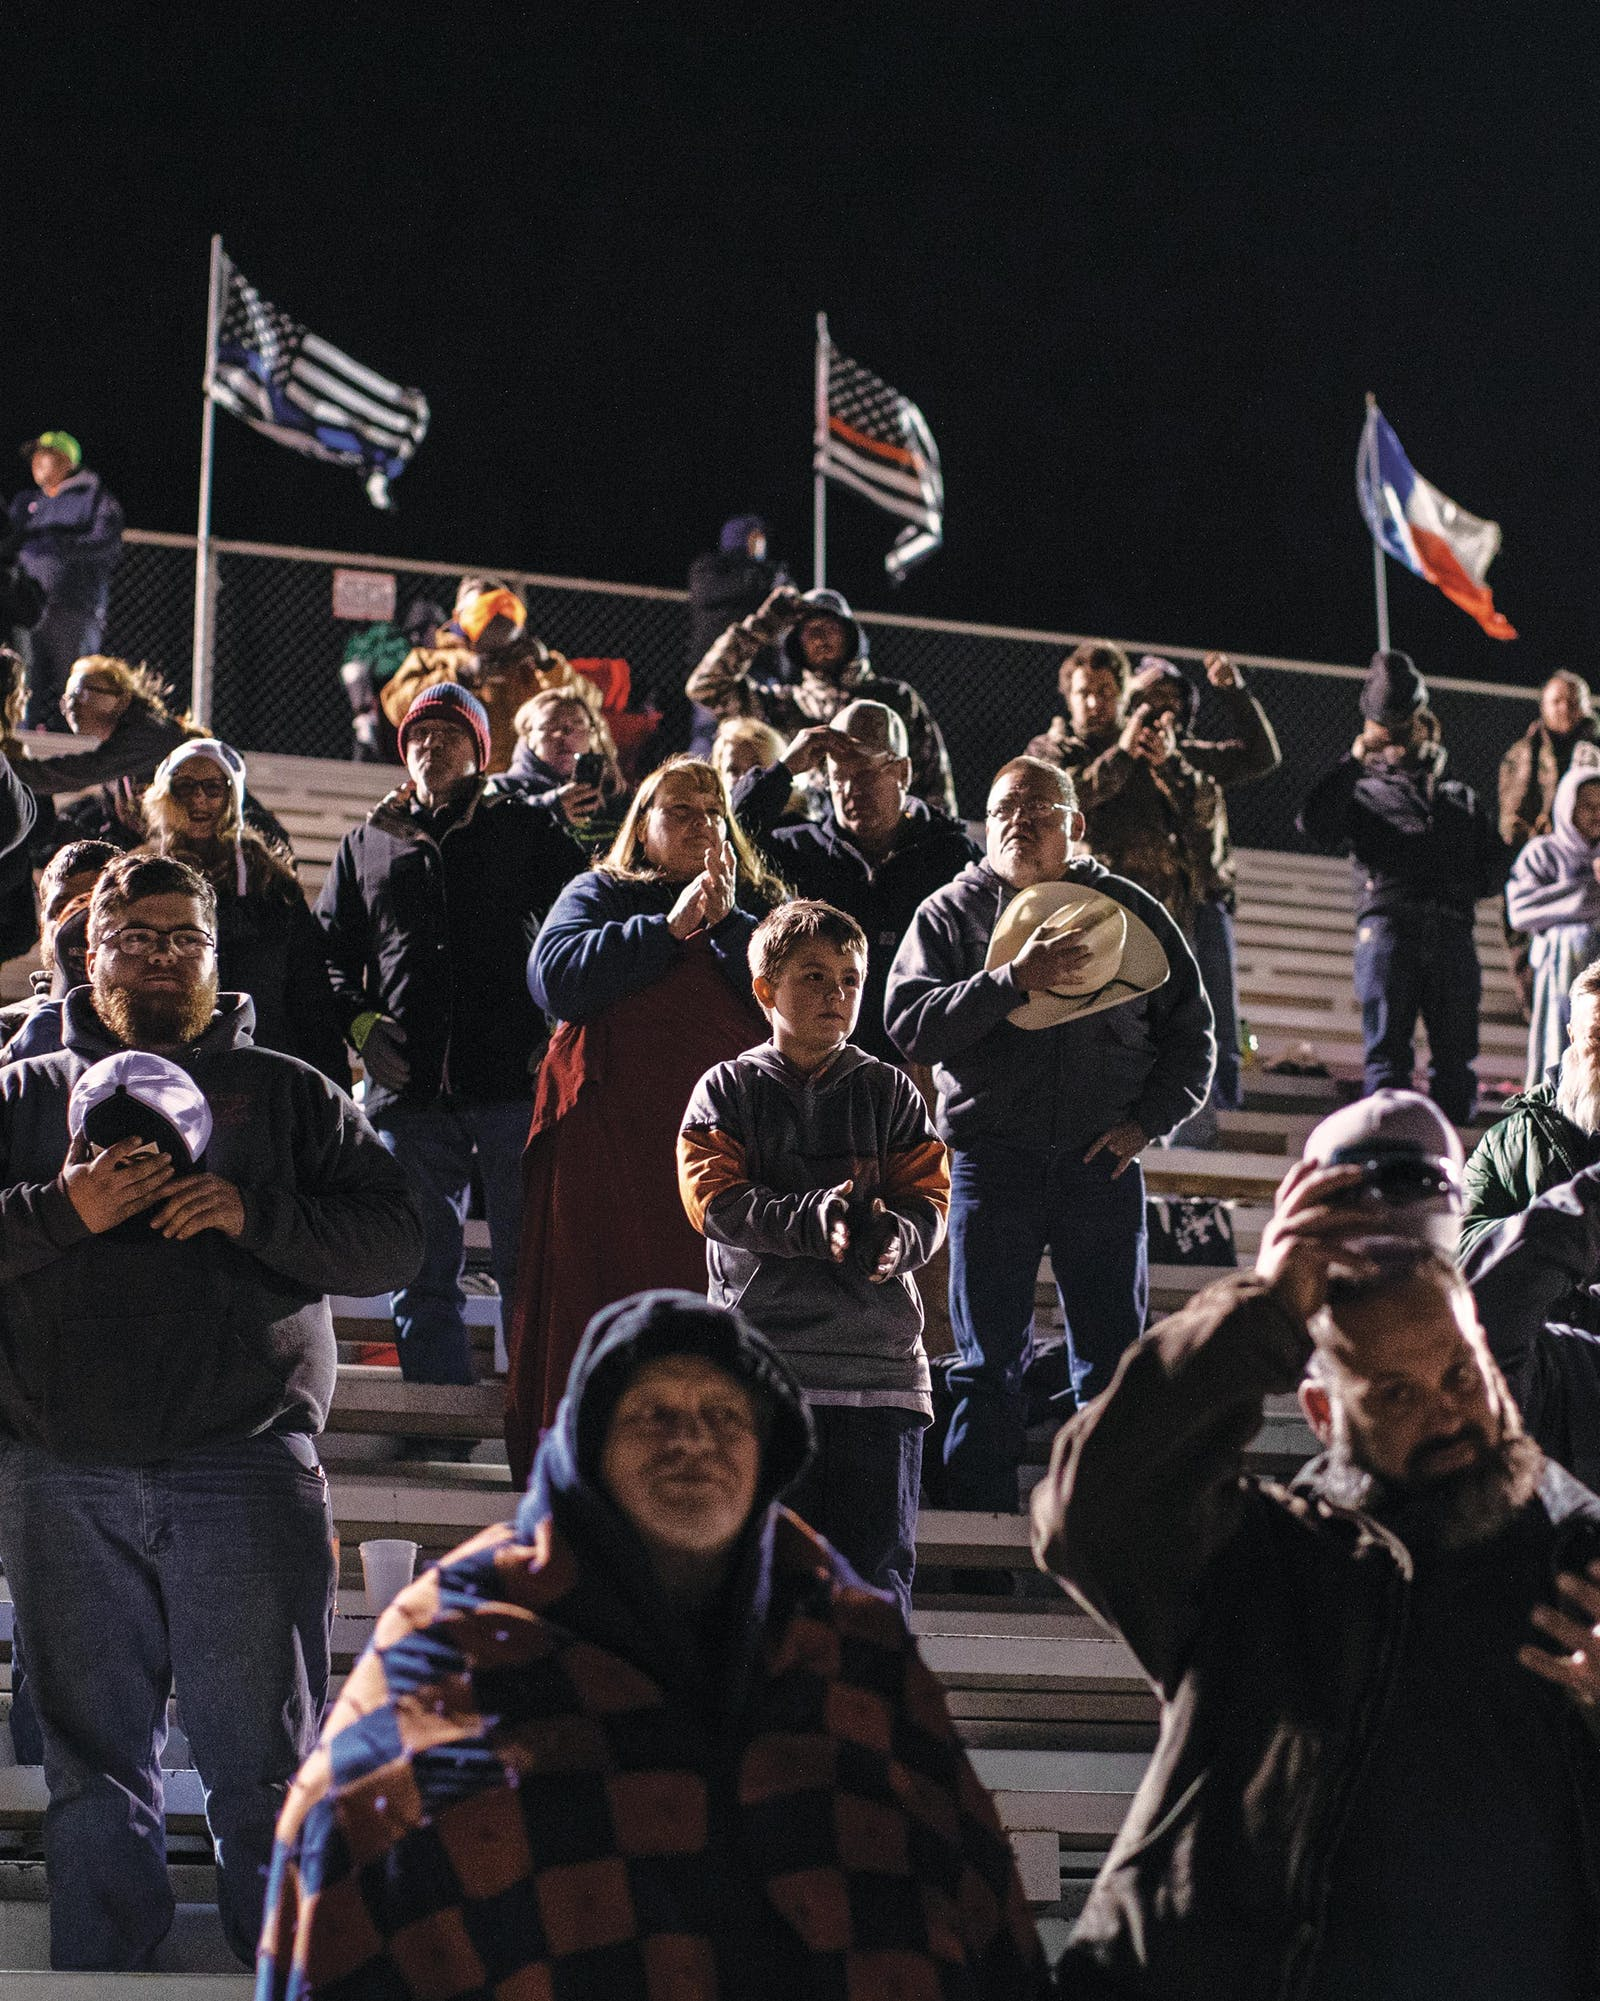 fans at a stock car race in Wichita Falls